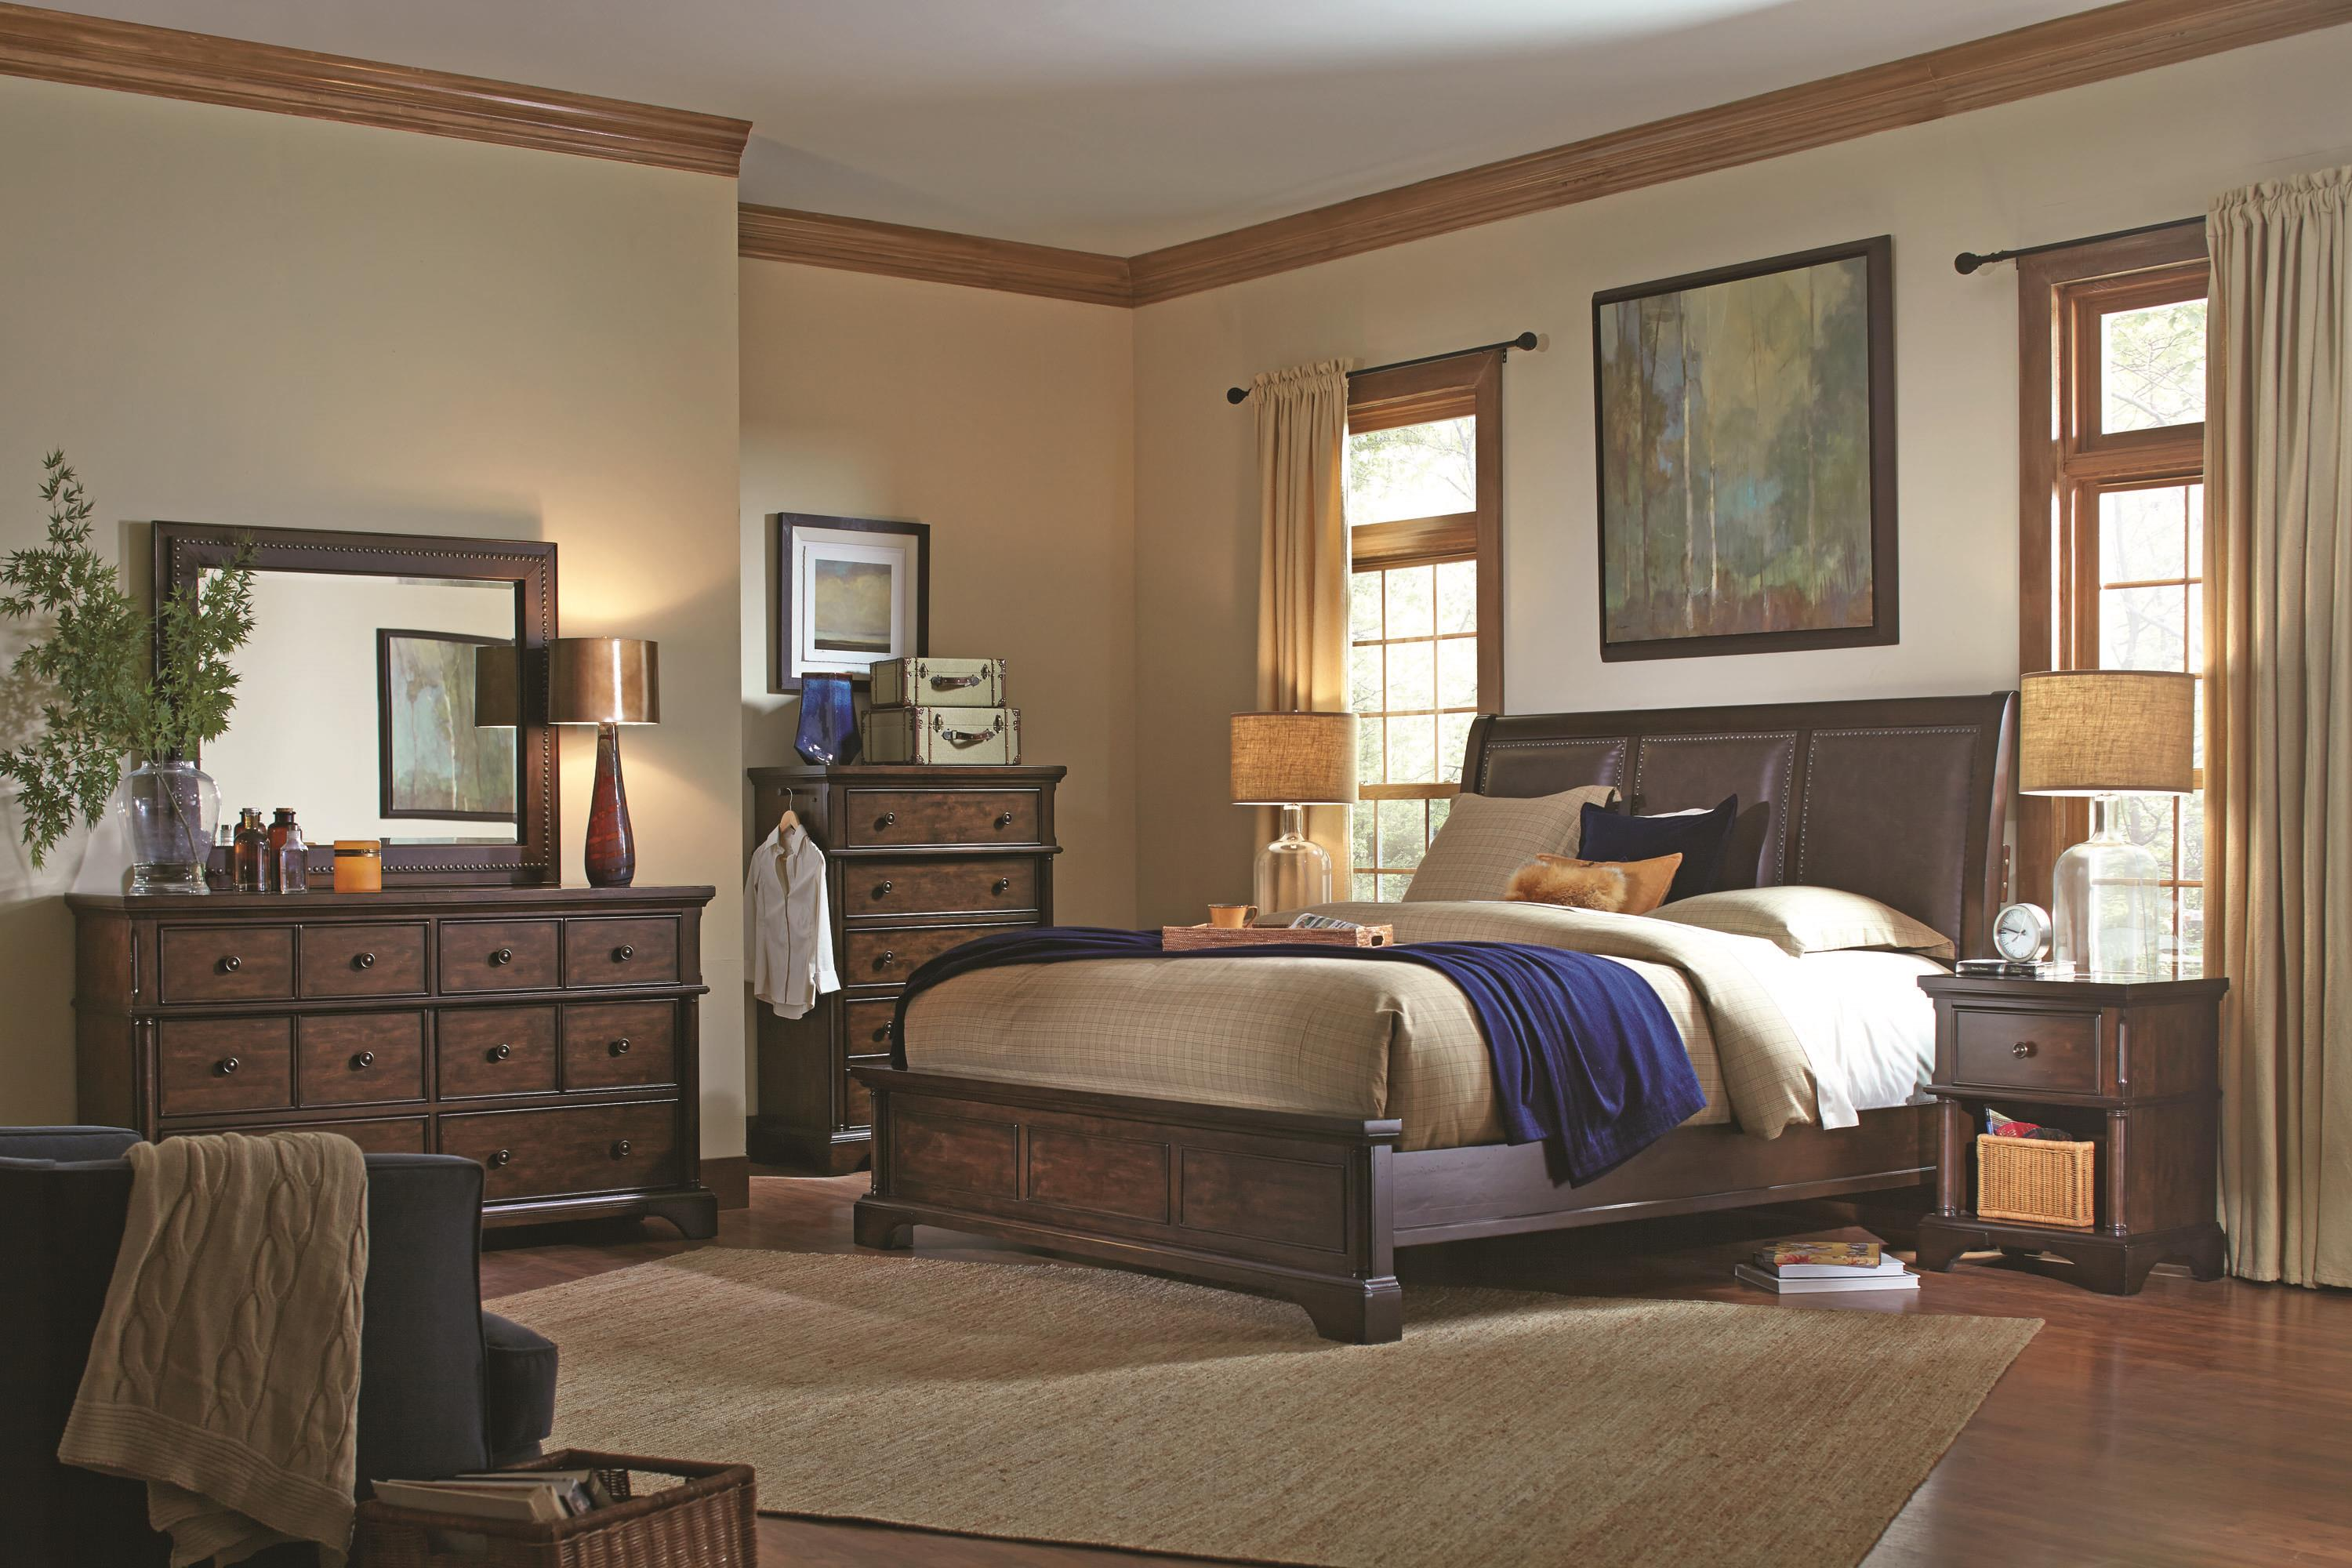 Aspenhome Bancroft Queen Bedroom Group - Item Number: I08 Q Bedroom Group 3